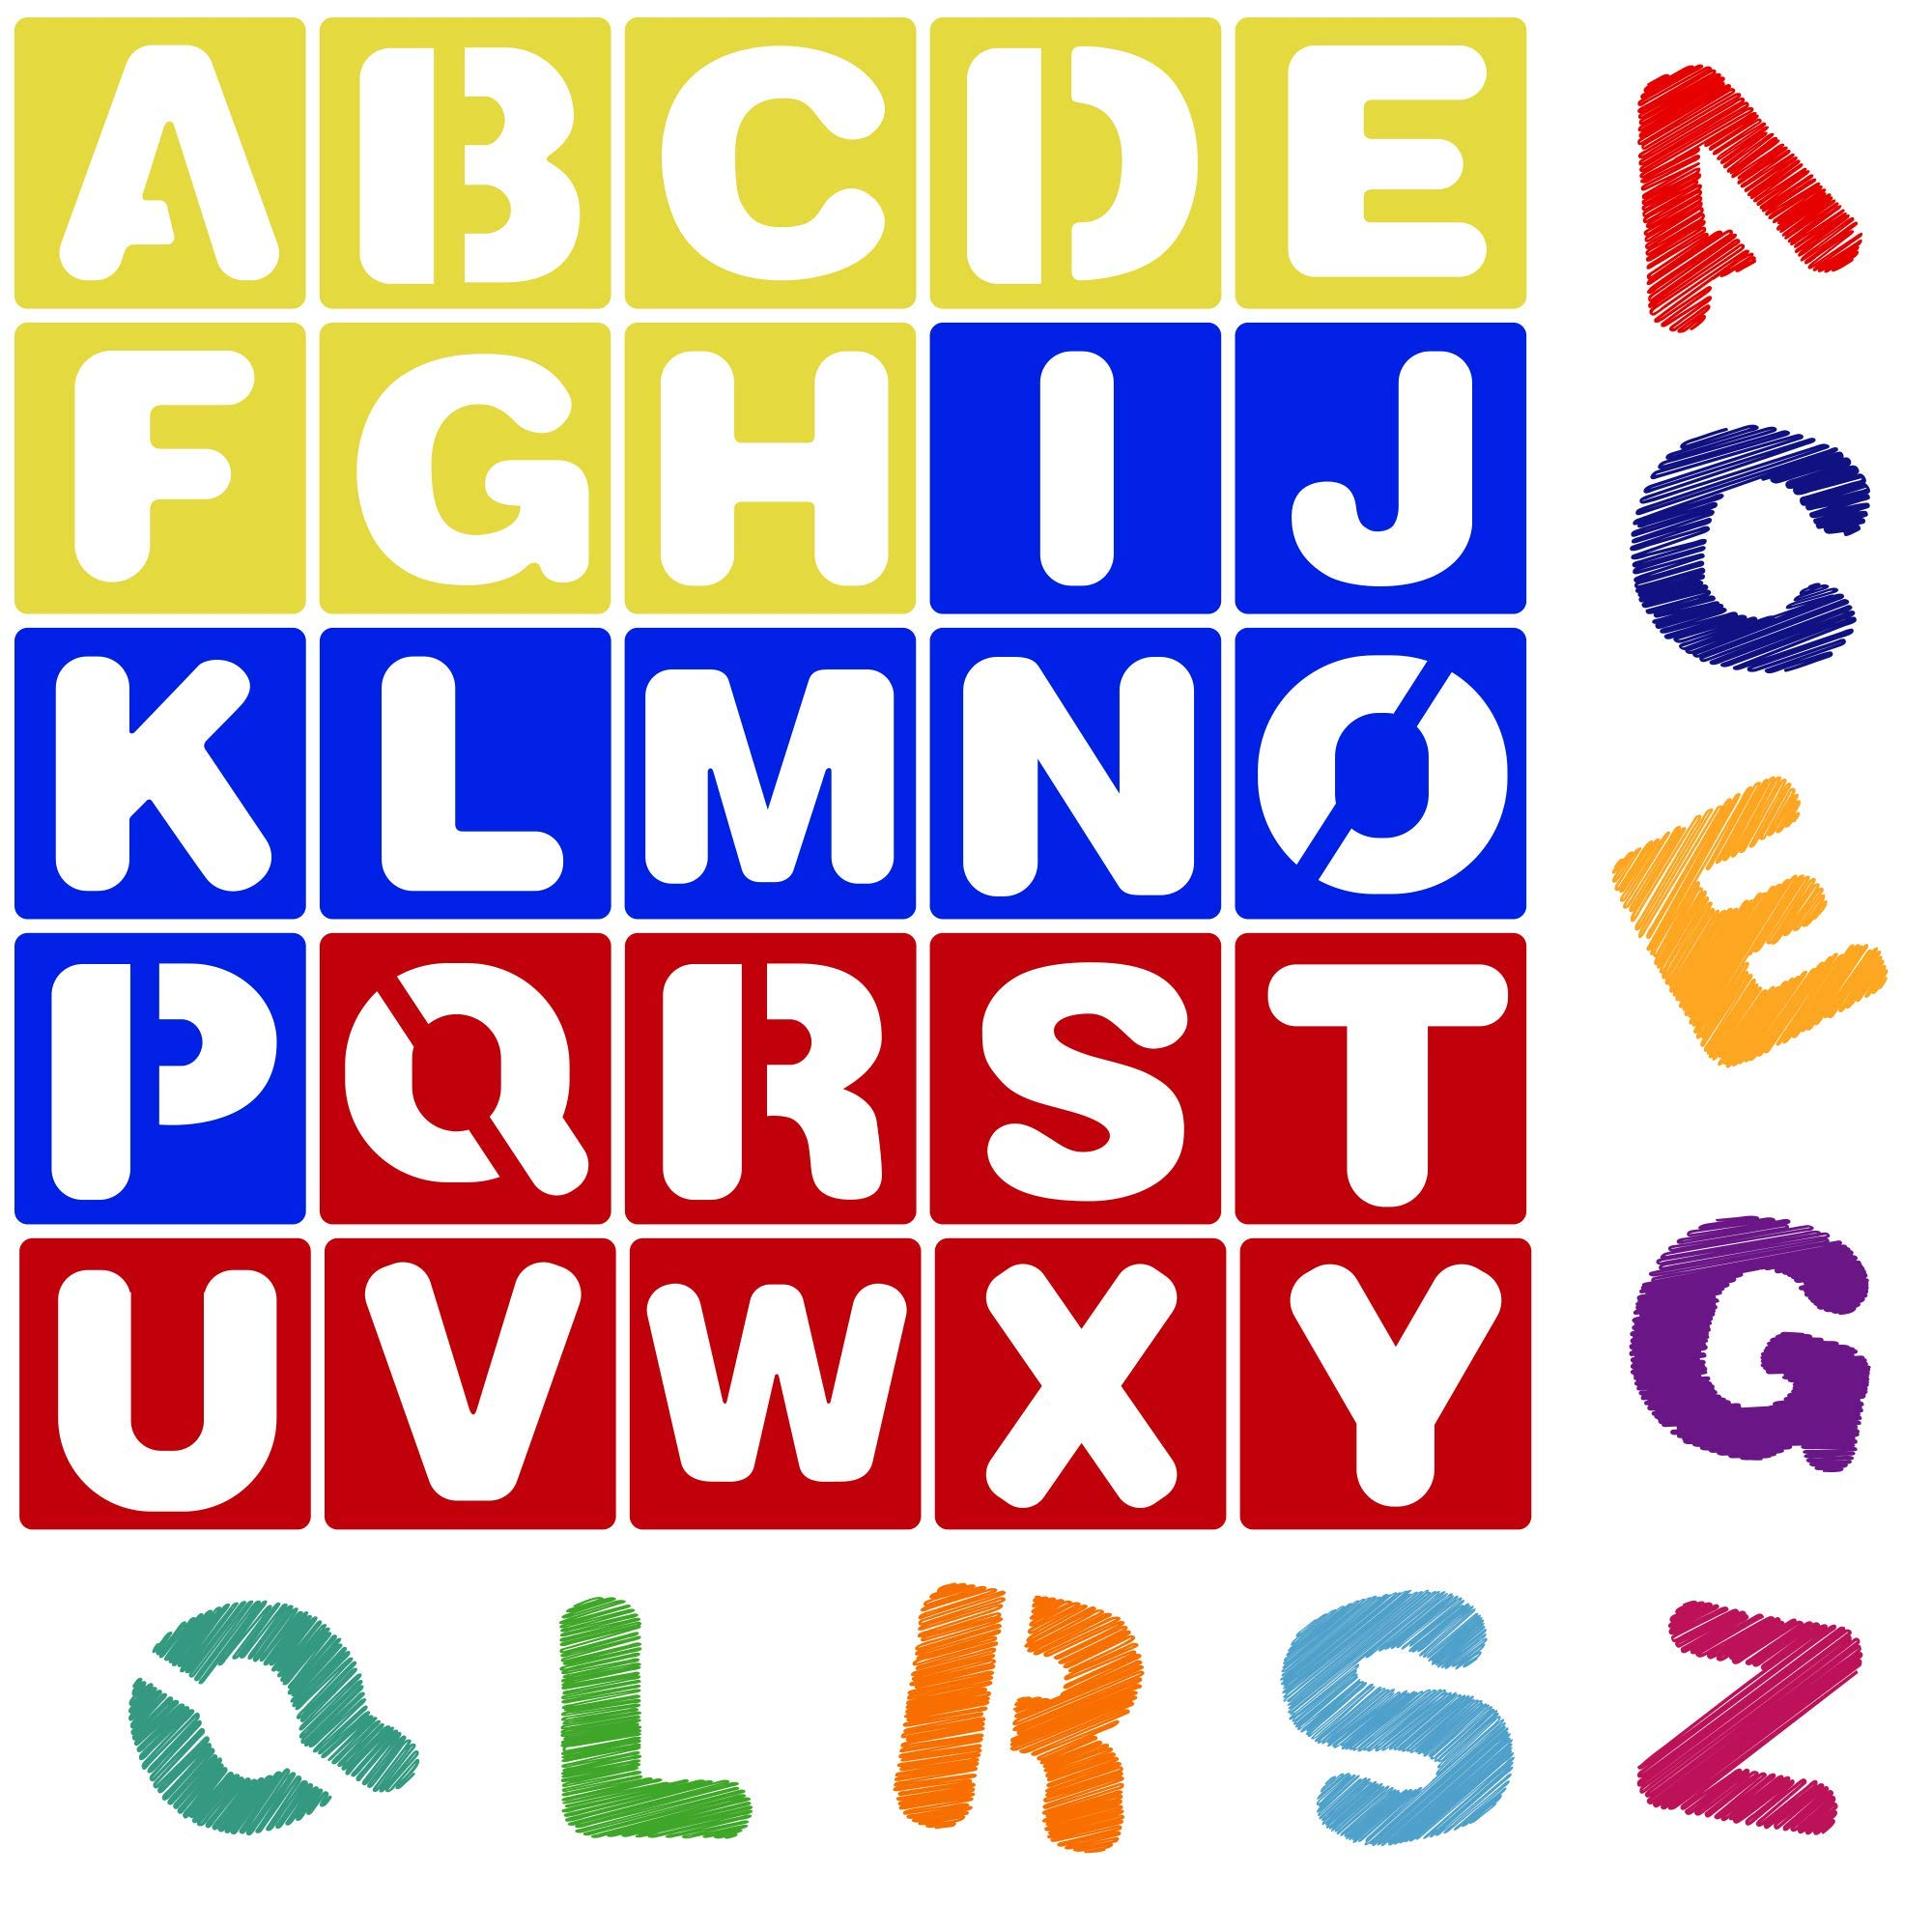 Karty Alphabet Letter Stencil Set for Kids and Adults - Painting, Lettering and Drawing Templates - Large Plastic ABC Stencils for Protest Posters, Arts and Crafts Projects - 8 Inch